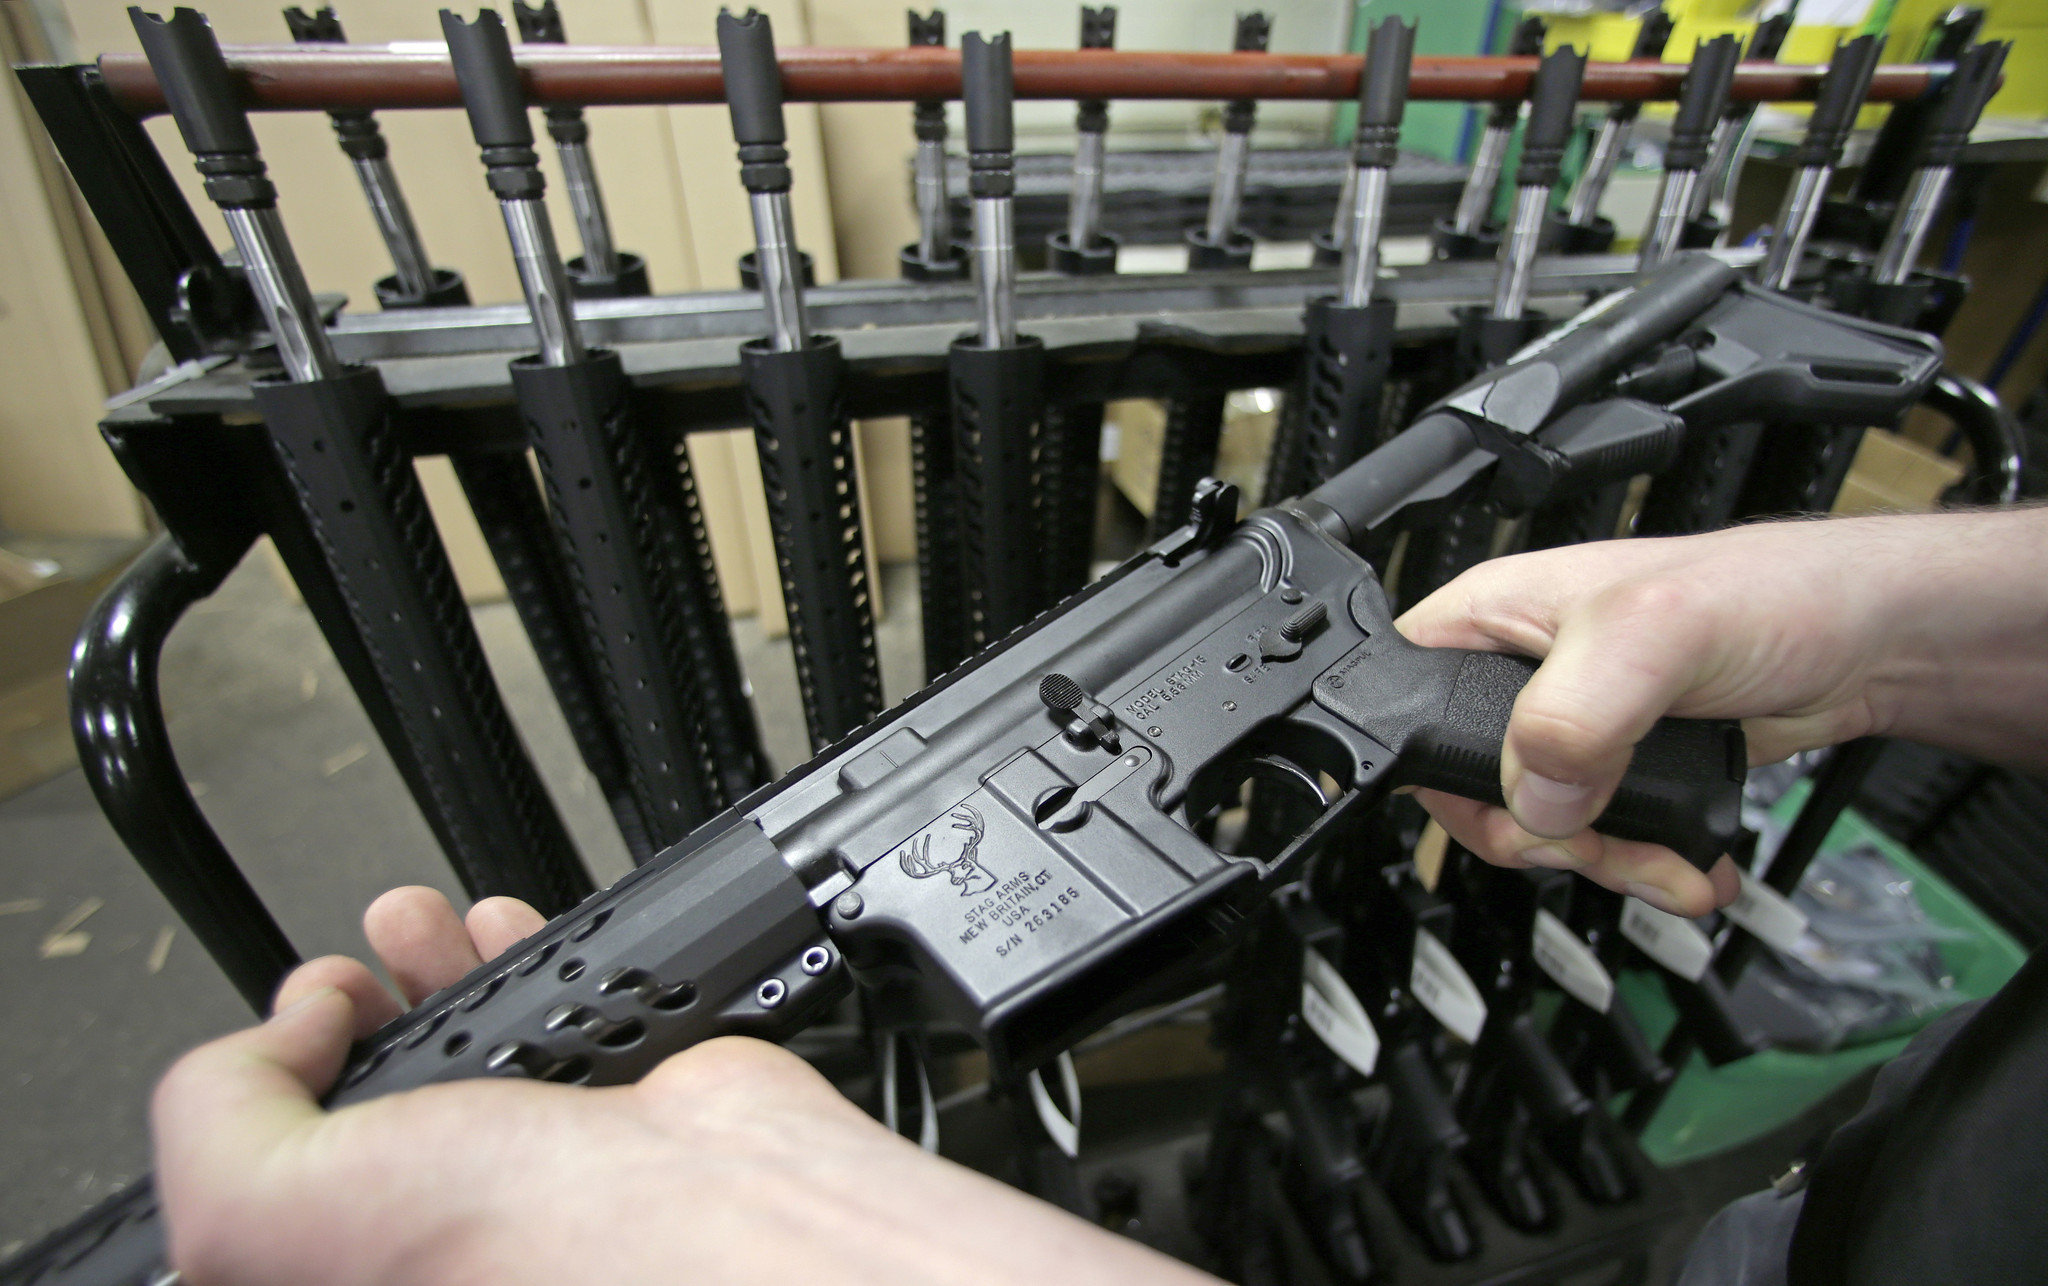 McHenry gun shop to raffle off AR-15 rifle to benefit Orlando shooting victims